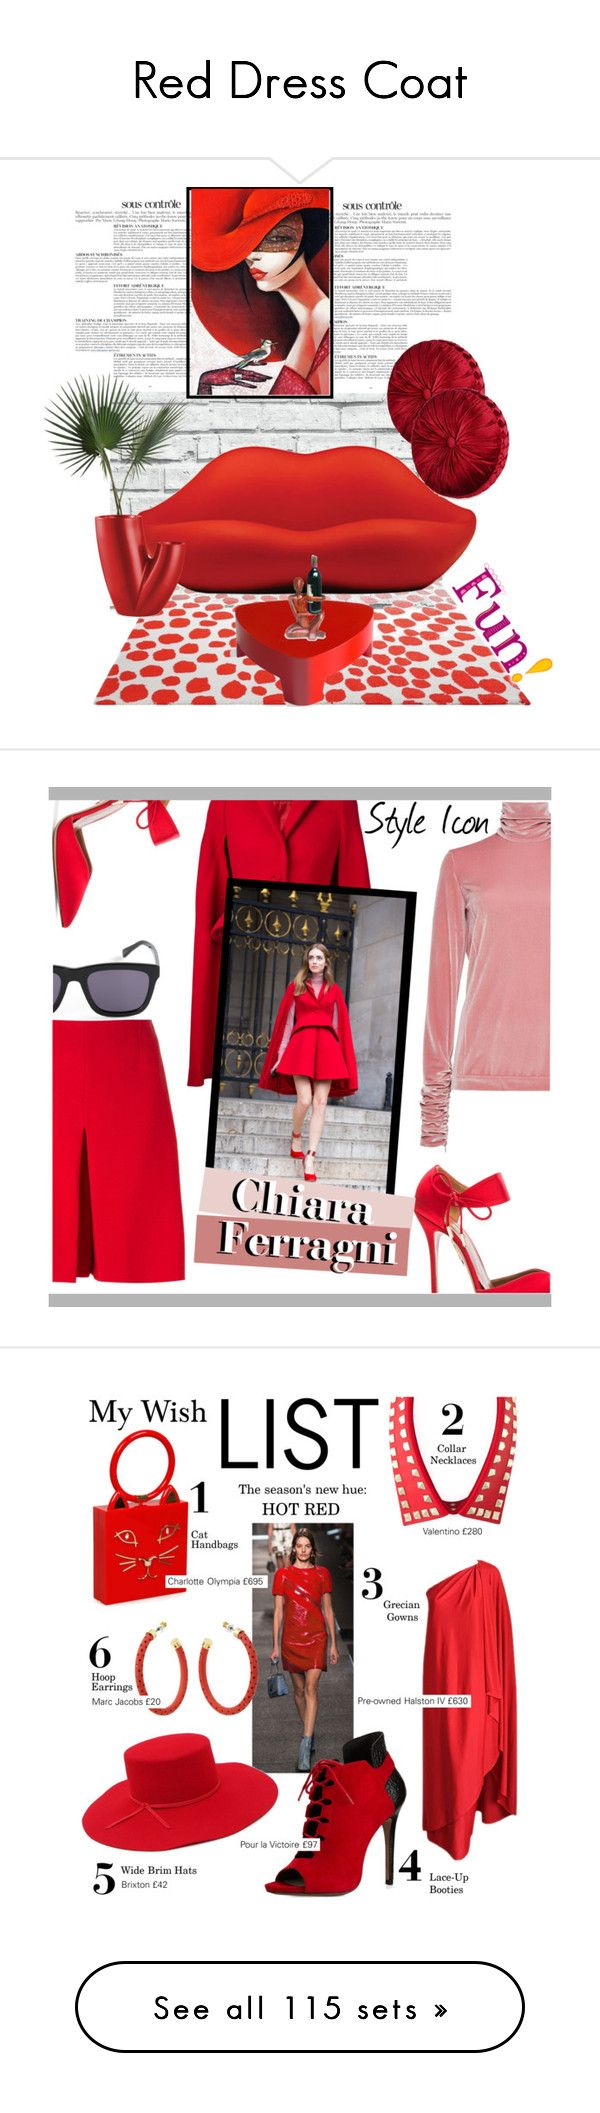 """Red Dress Coat"" by yours-styling-best-friend ❤ liked on Polyvore featuring love, red, dress, LoveIt, reddress, interior, interiors, interior design, home and home decor"